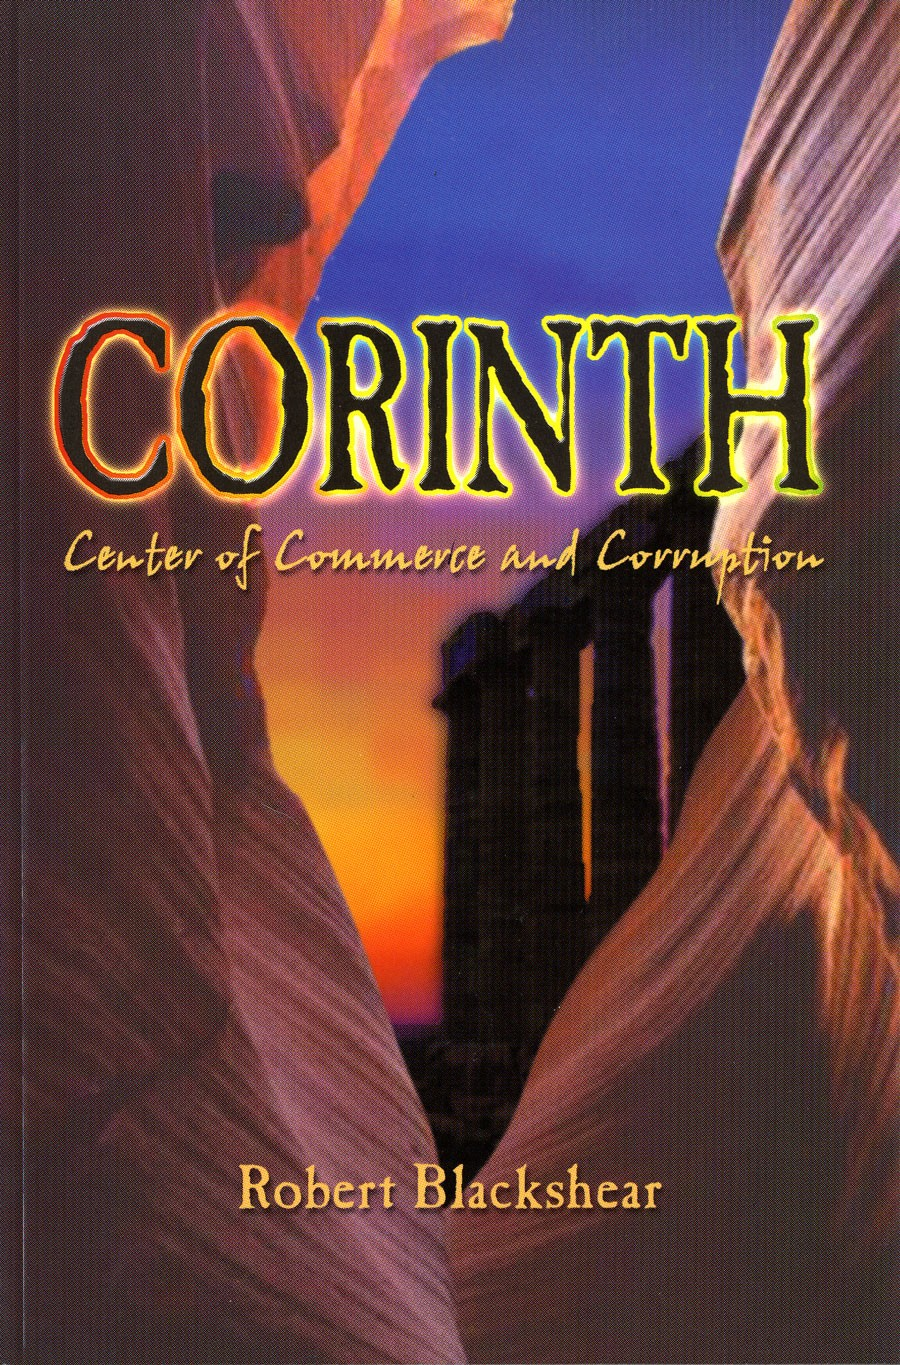 Corinth: Center of Commerce and Corruption